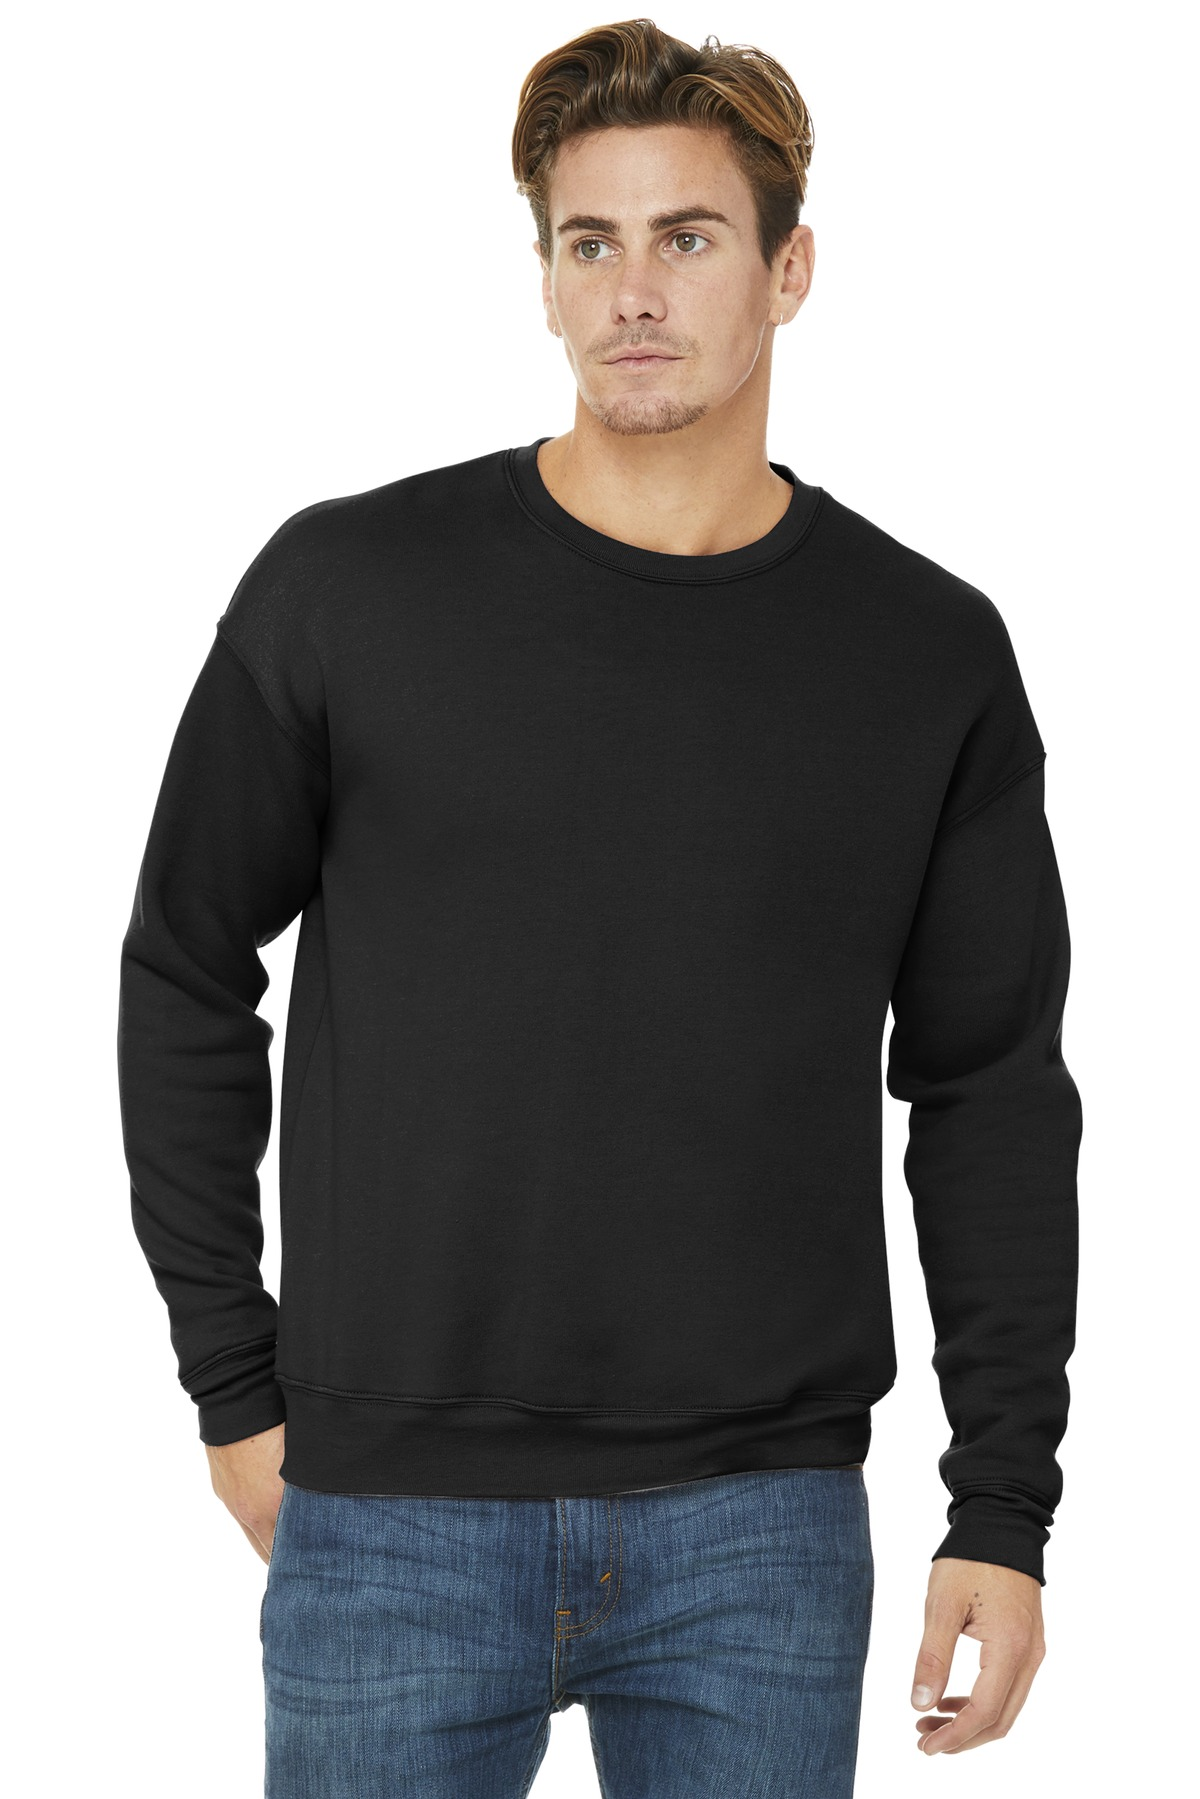 BELLA+CANVAS  ®  Unisex Sponge Fleece Drop Shoulder Sweatshirt. BC3945 - Black